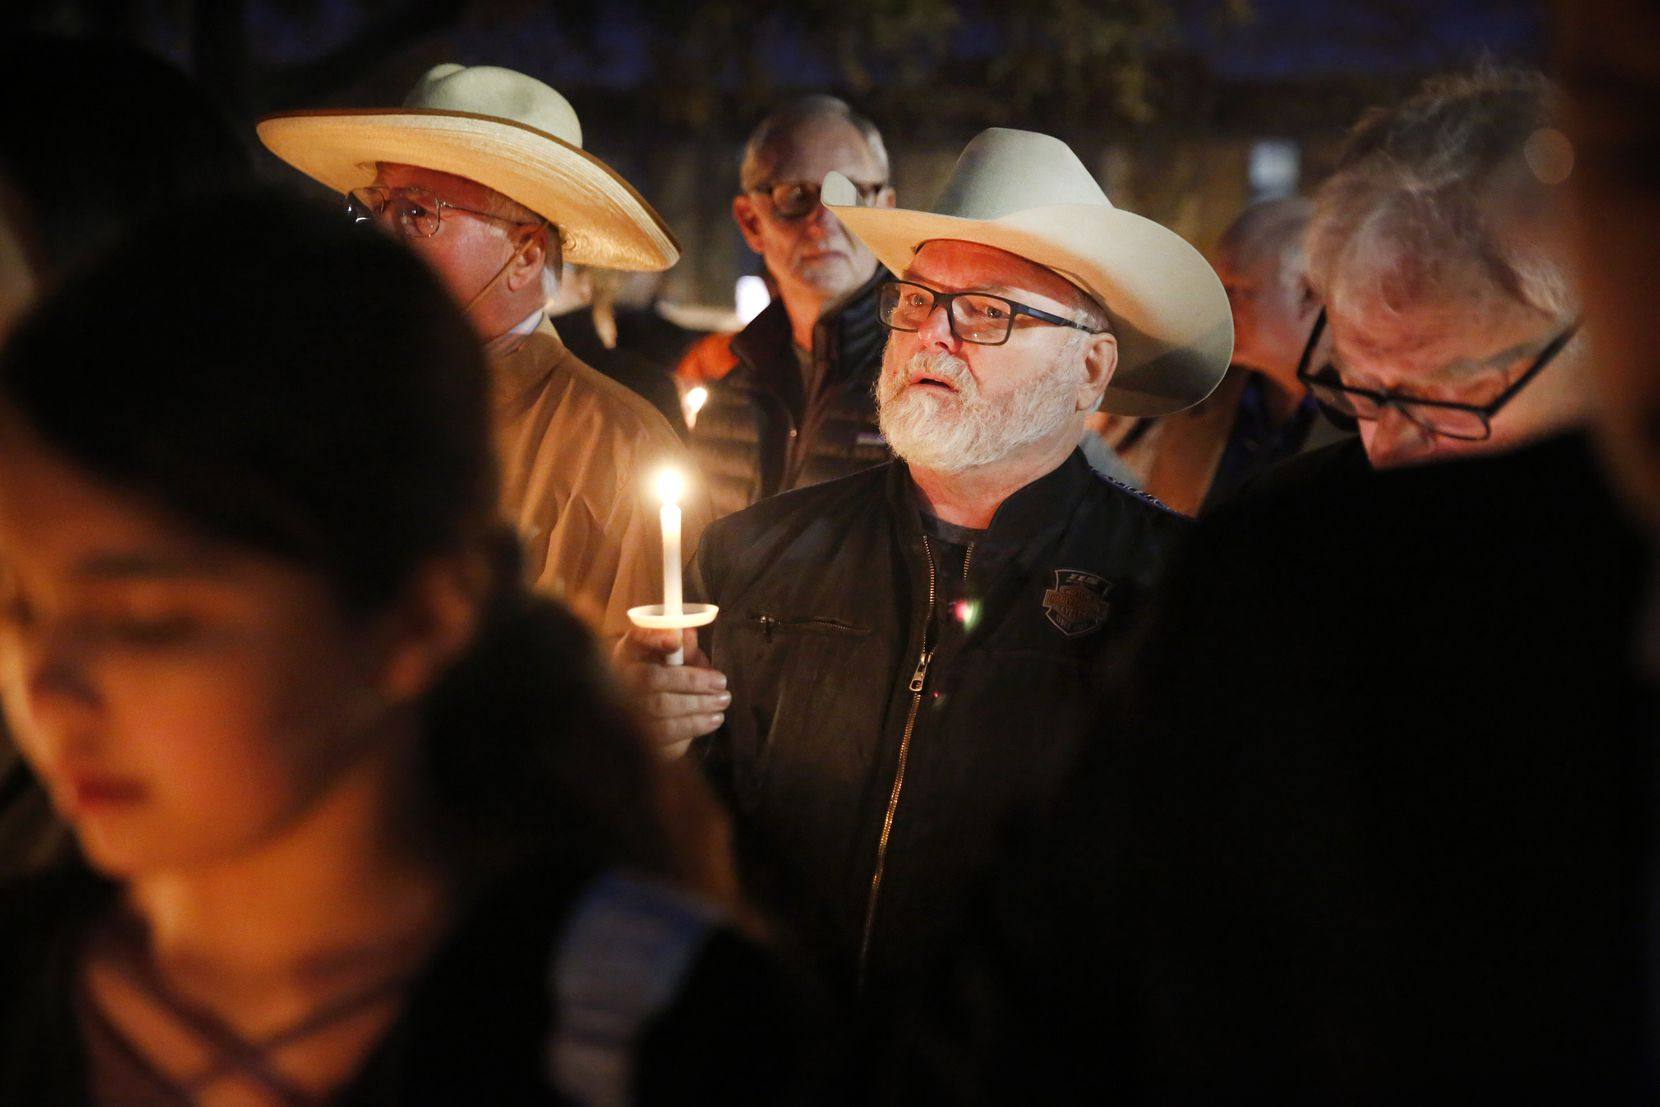 Stephen Willeford, the man who confronted and exchanged gunfire with the Sutherland Springs church shooter in 2017 (center) joined church and community members gathered outside the West Freeway Church of Christ in Fort Worth for a candlelight vigil Monday evening.